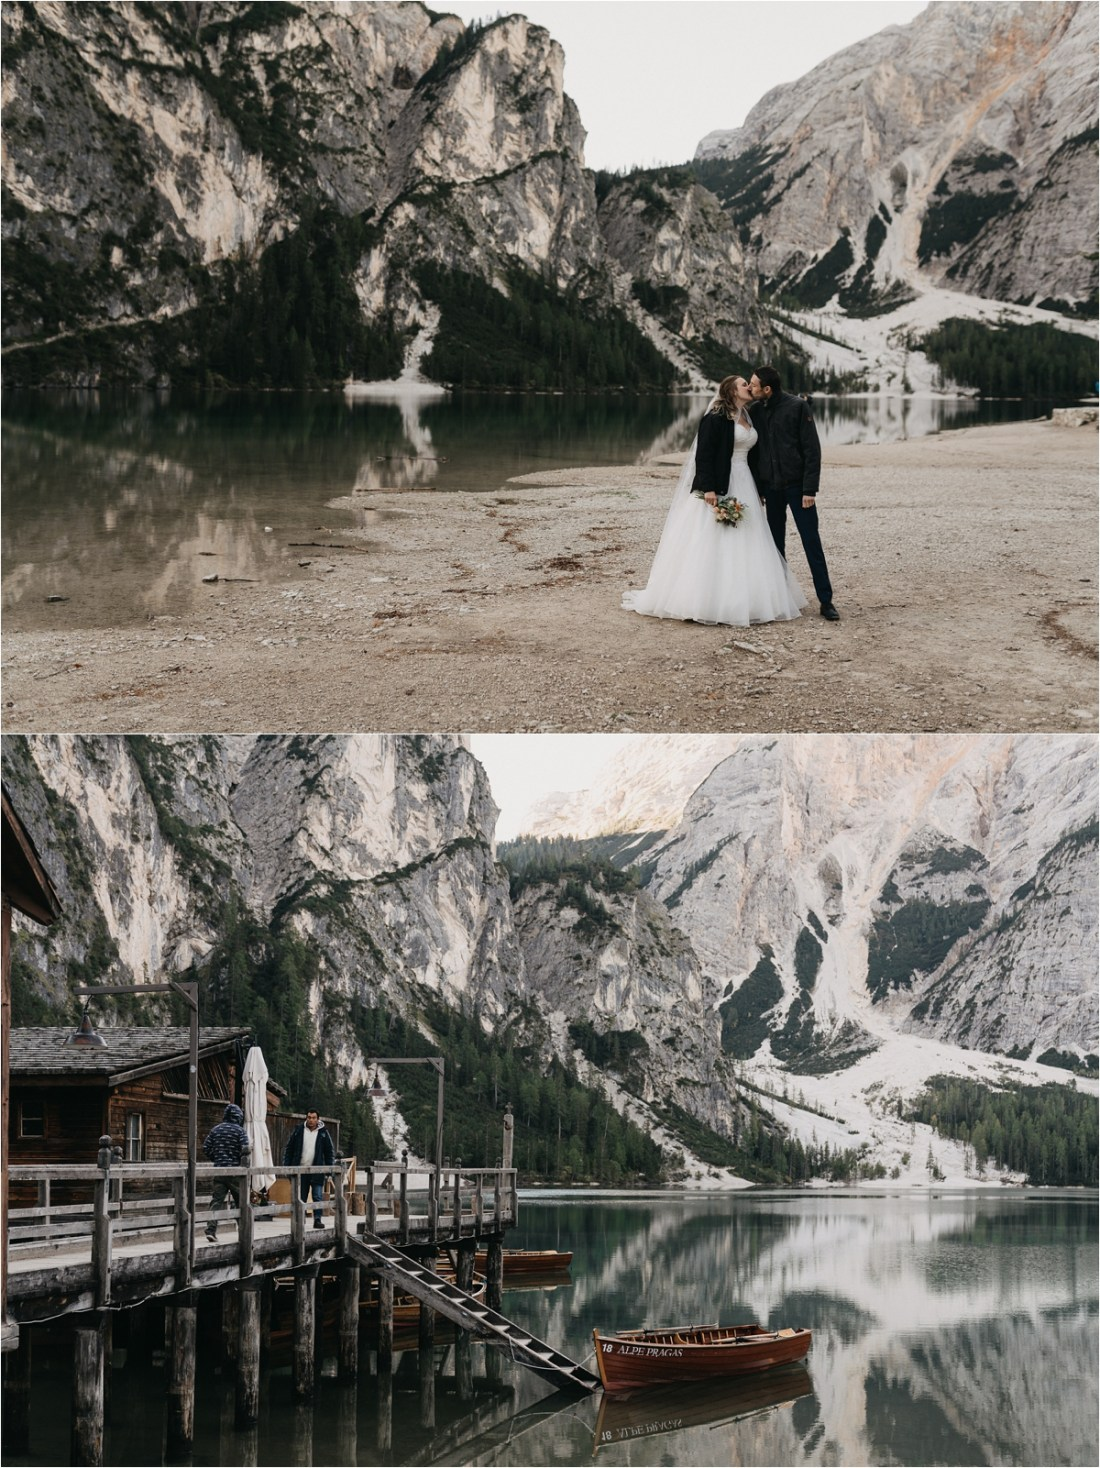 The bride wears a black jacket over her wedding dress at Pragser Wildsee in Italy. Photos by by Romany Flower